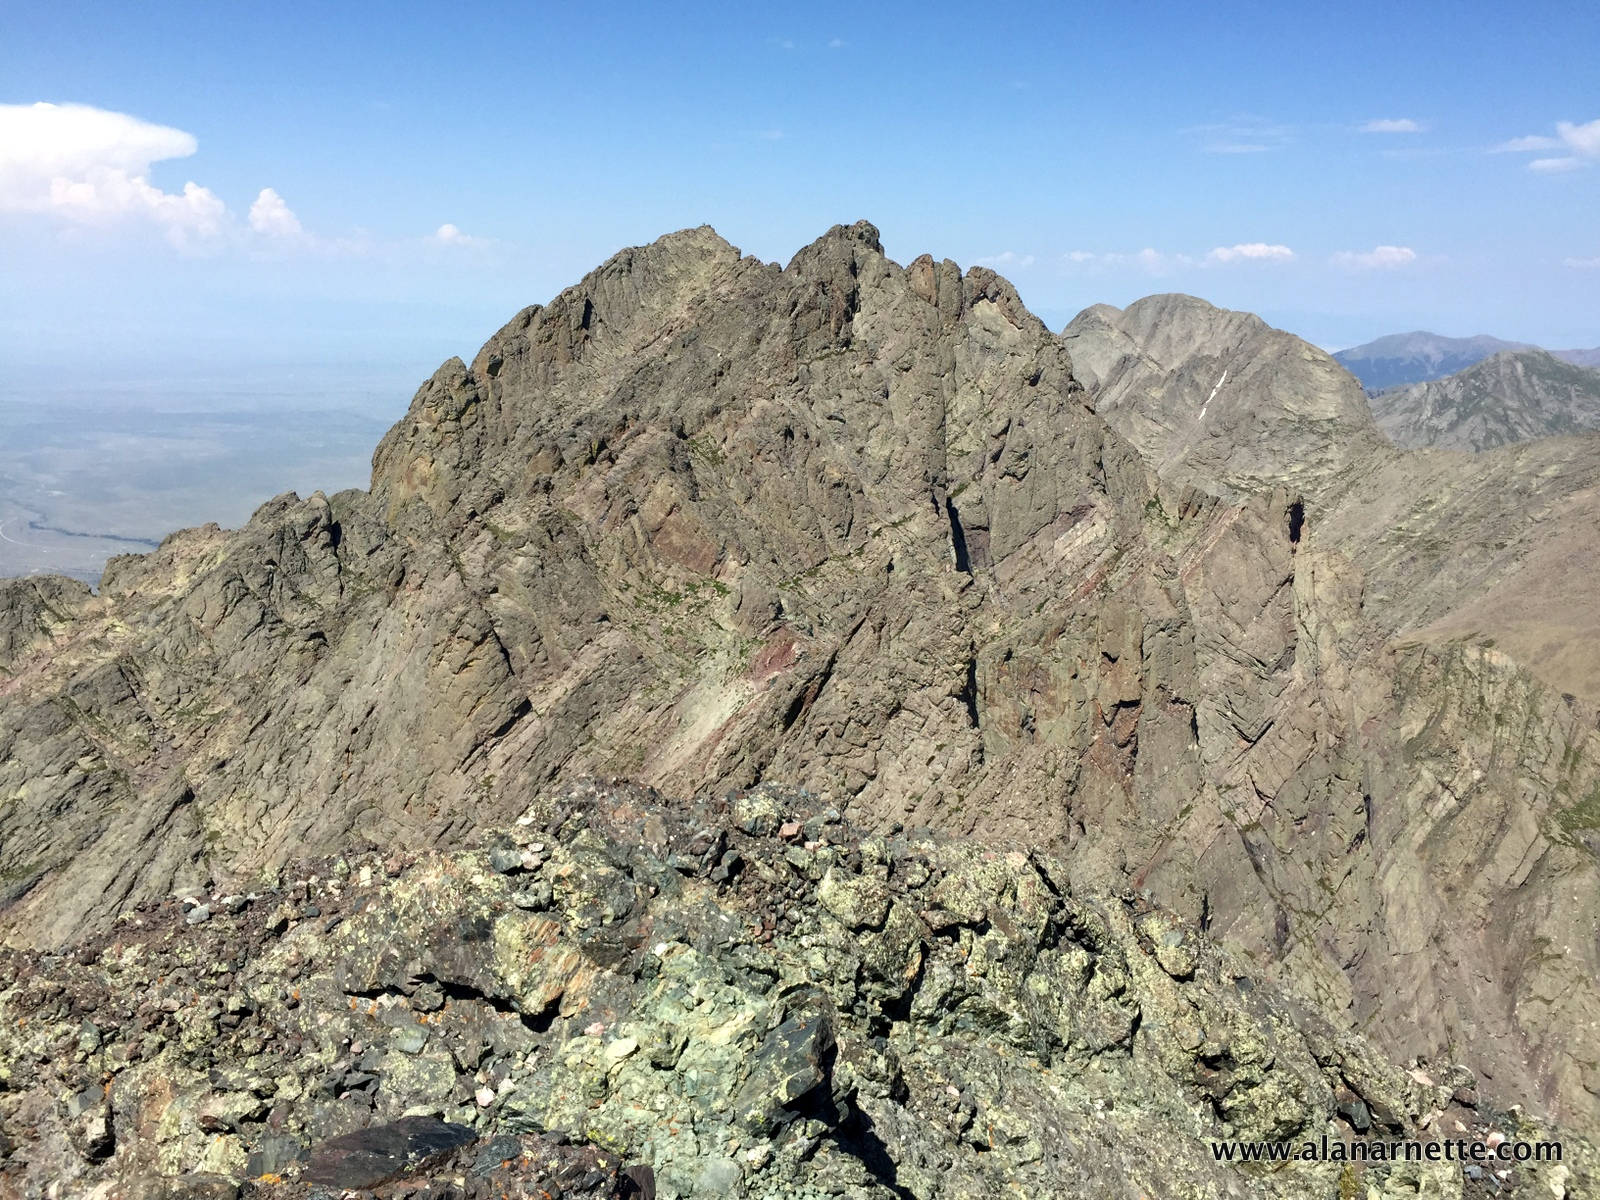 Looking back at Crestone Peak from Crestone Needle. You can see climbers on the summit.